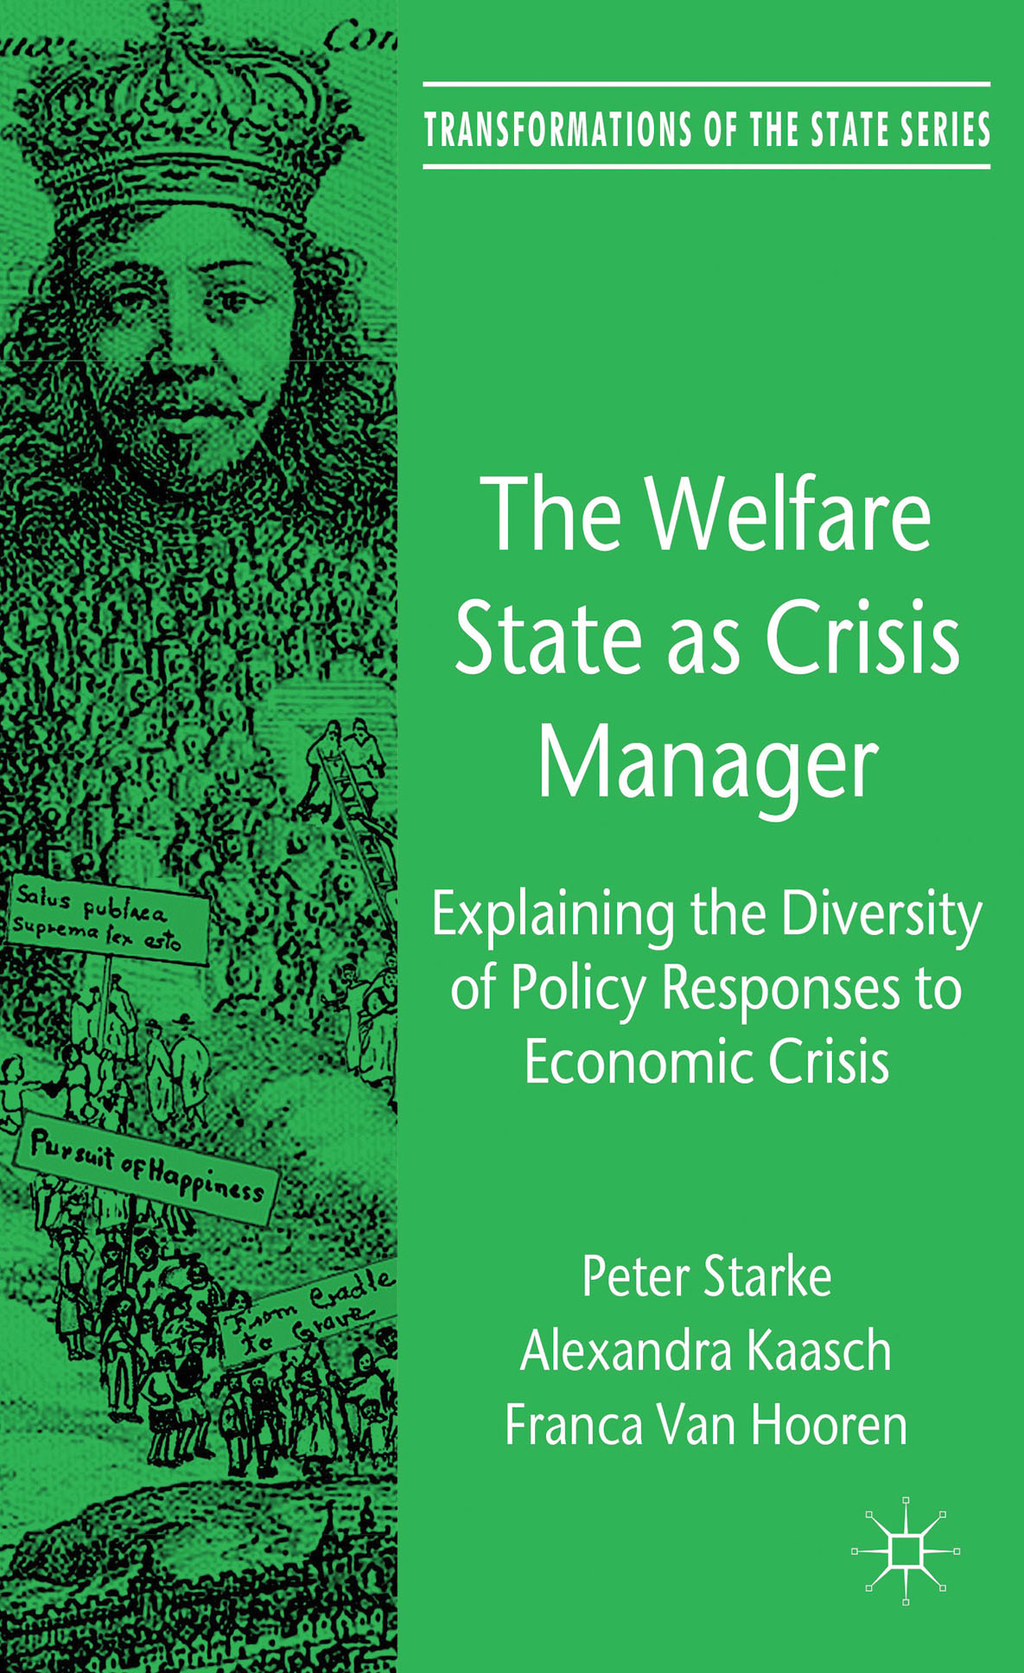 The Welfare State as Crisis Manager Explaining the Diversity of Policy Responses to Economic Crisis